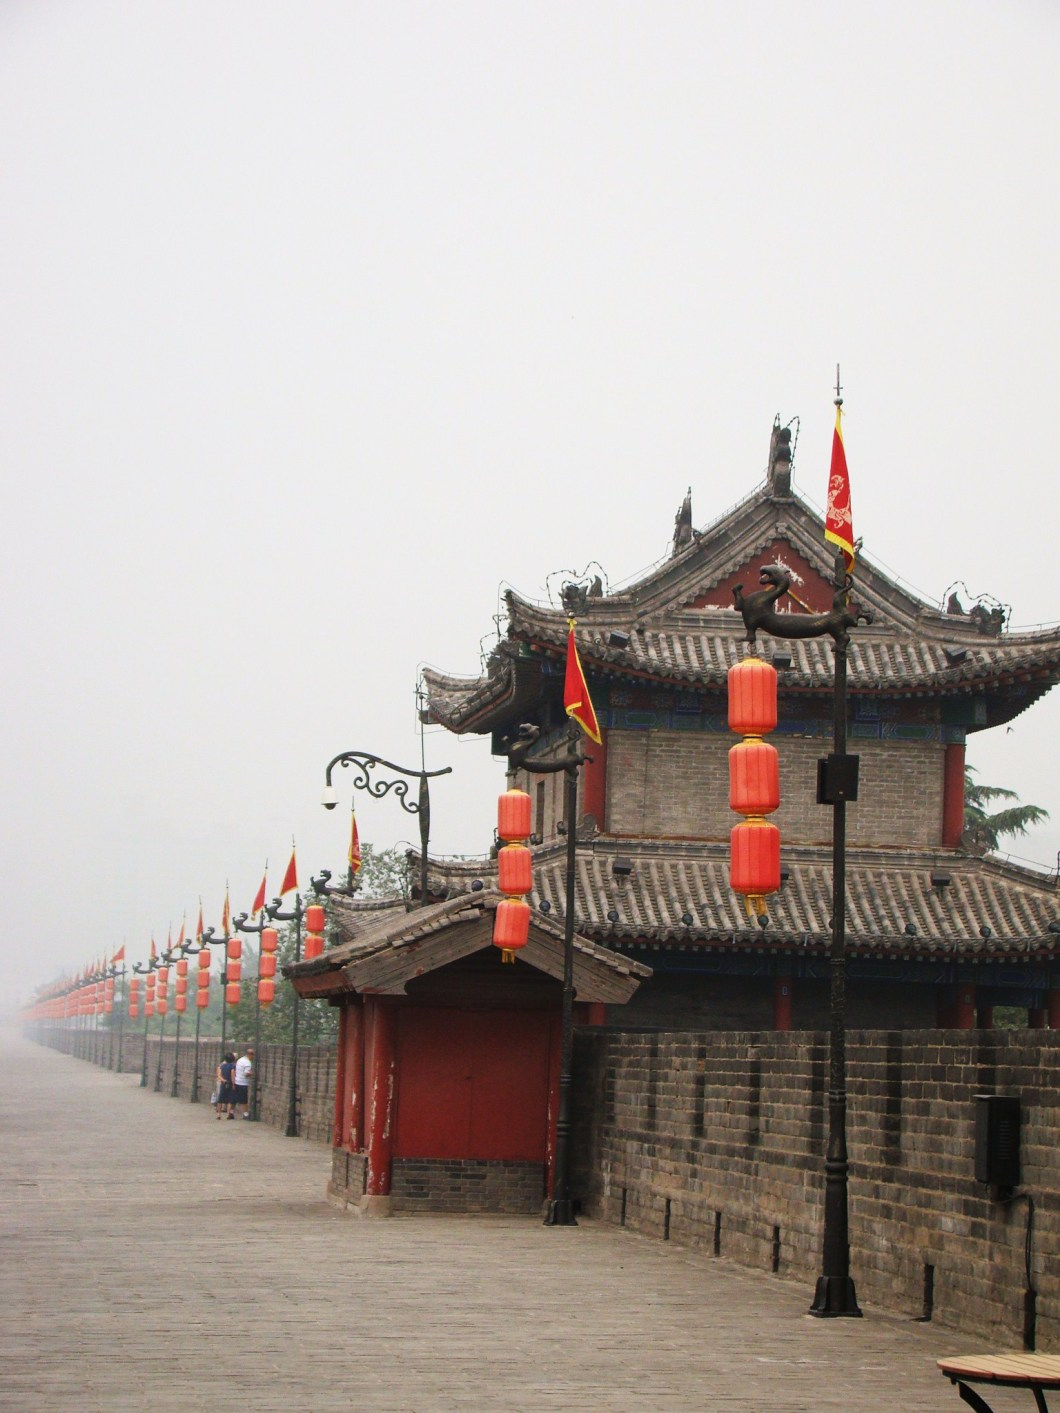 Our Xian City Wall adventure starts!!